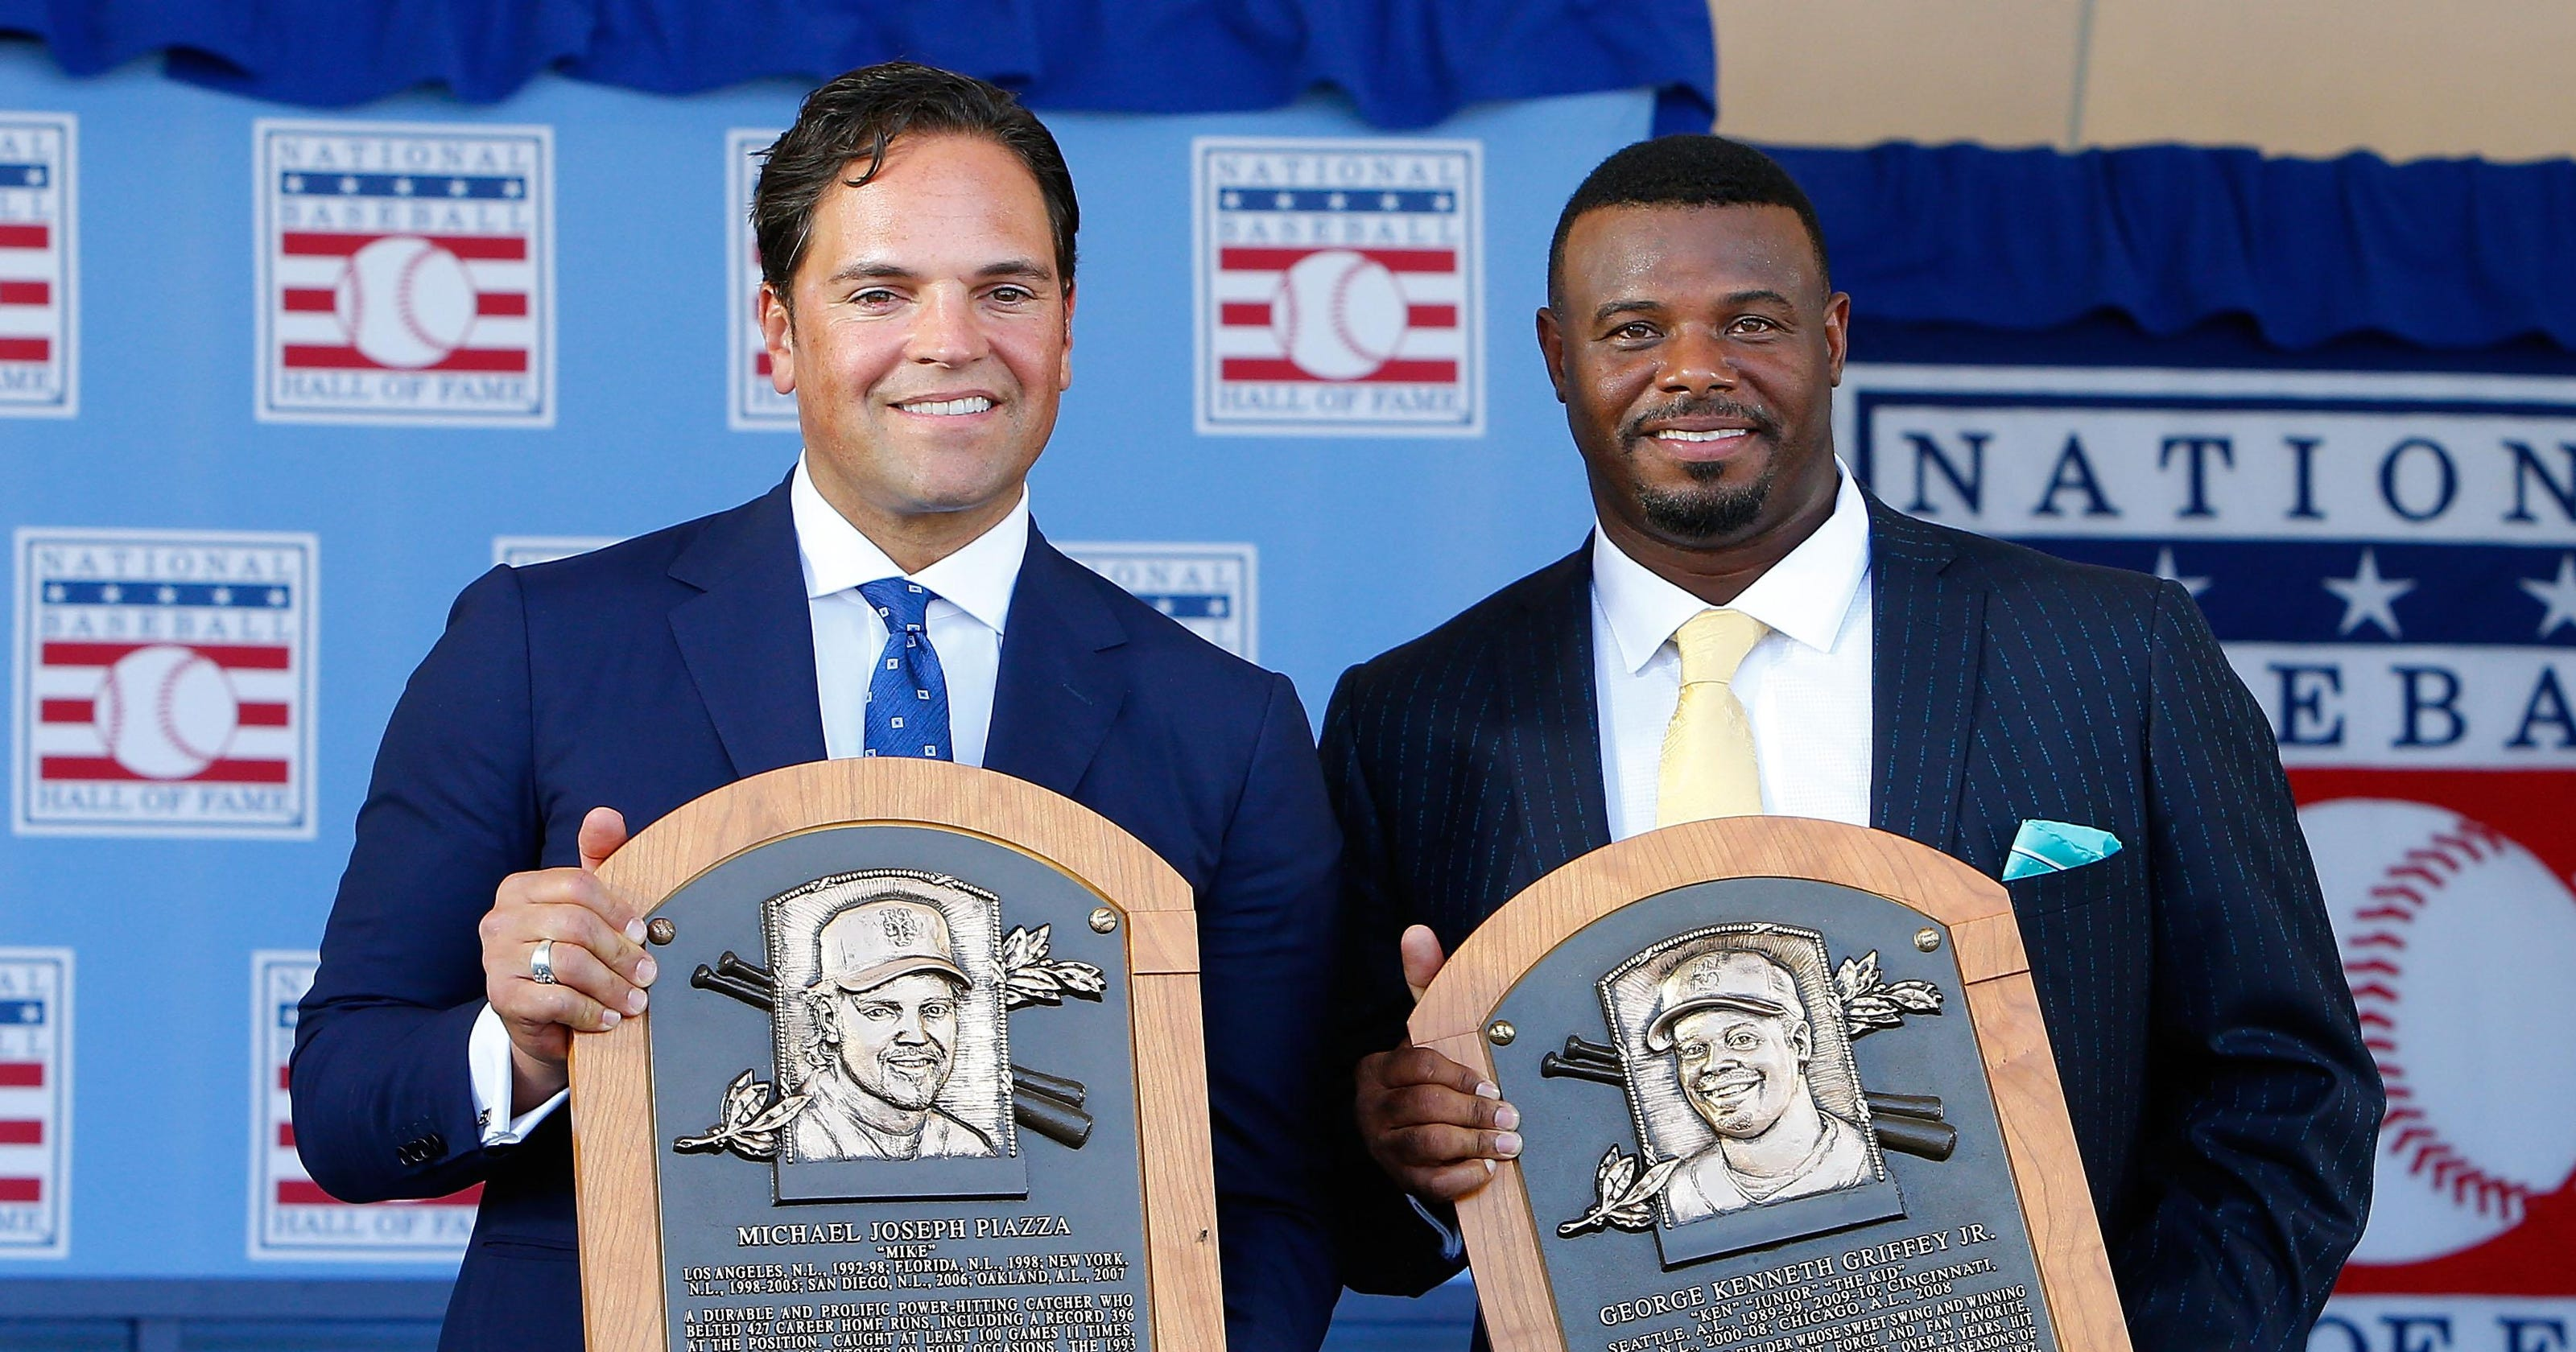 bfeebd241c Griffey Jr., Piazza inducted in tearful Hall ceremony